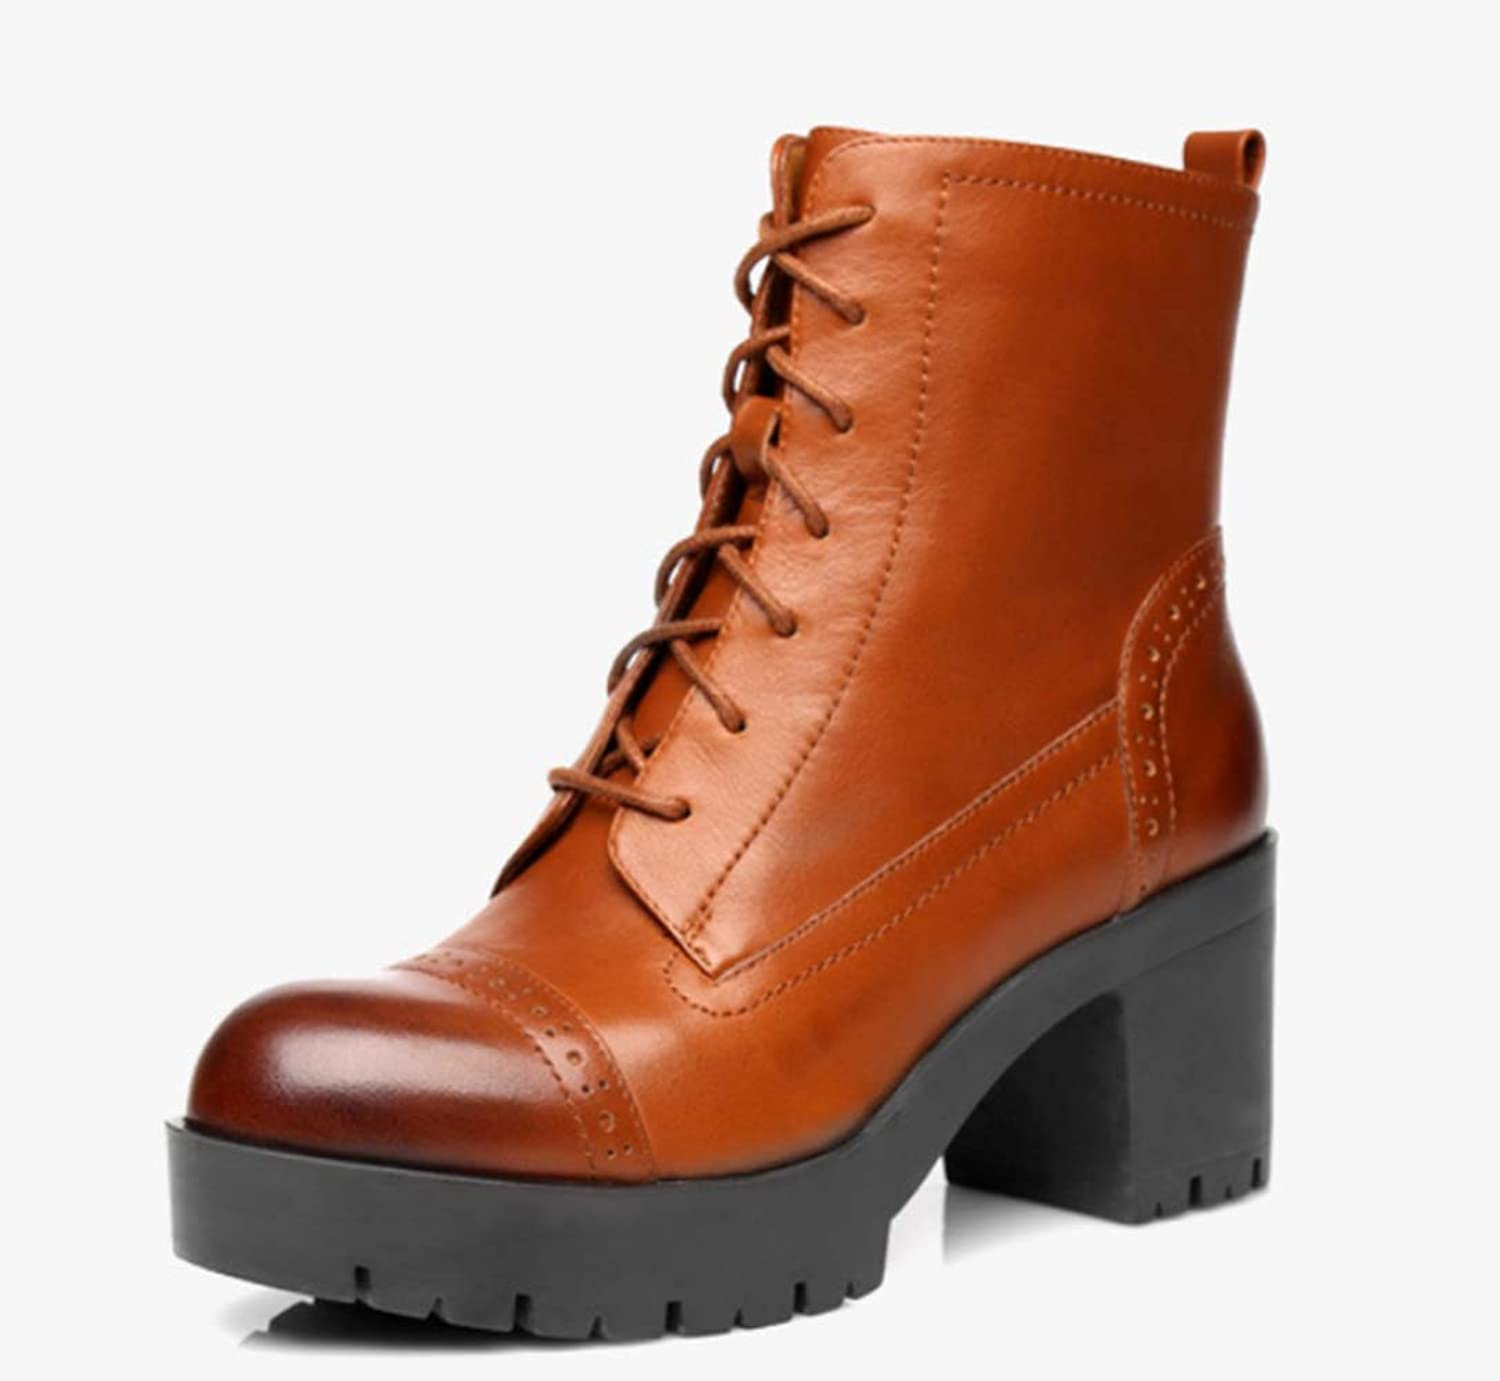 Shiney Women's Genuine Leather Ankle Boots High-Heeled Round Head Strap Chunky Heel Motorcycle Boots 2018 Autumn and Winter